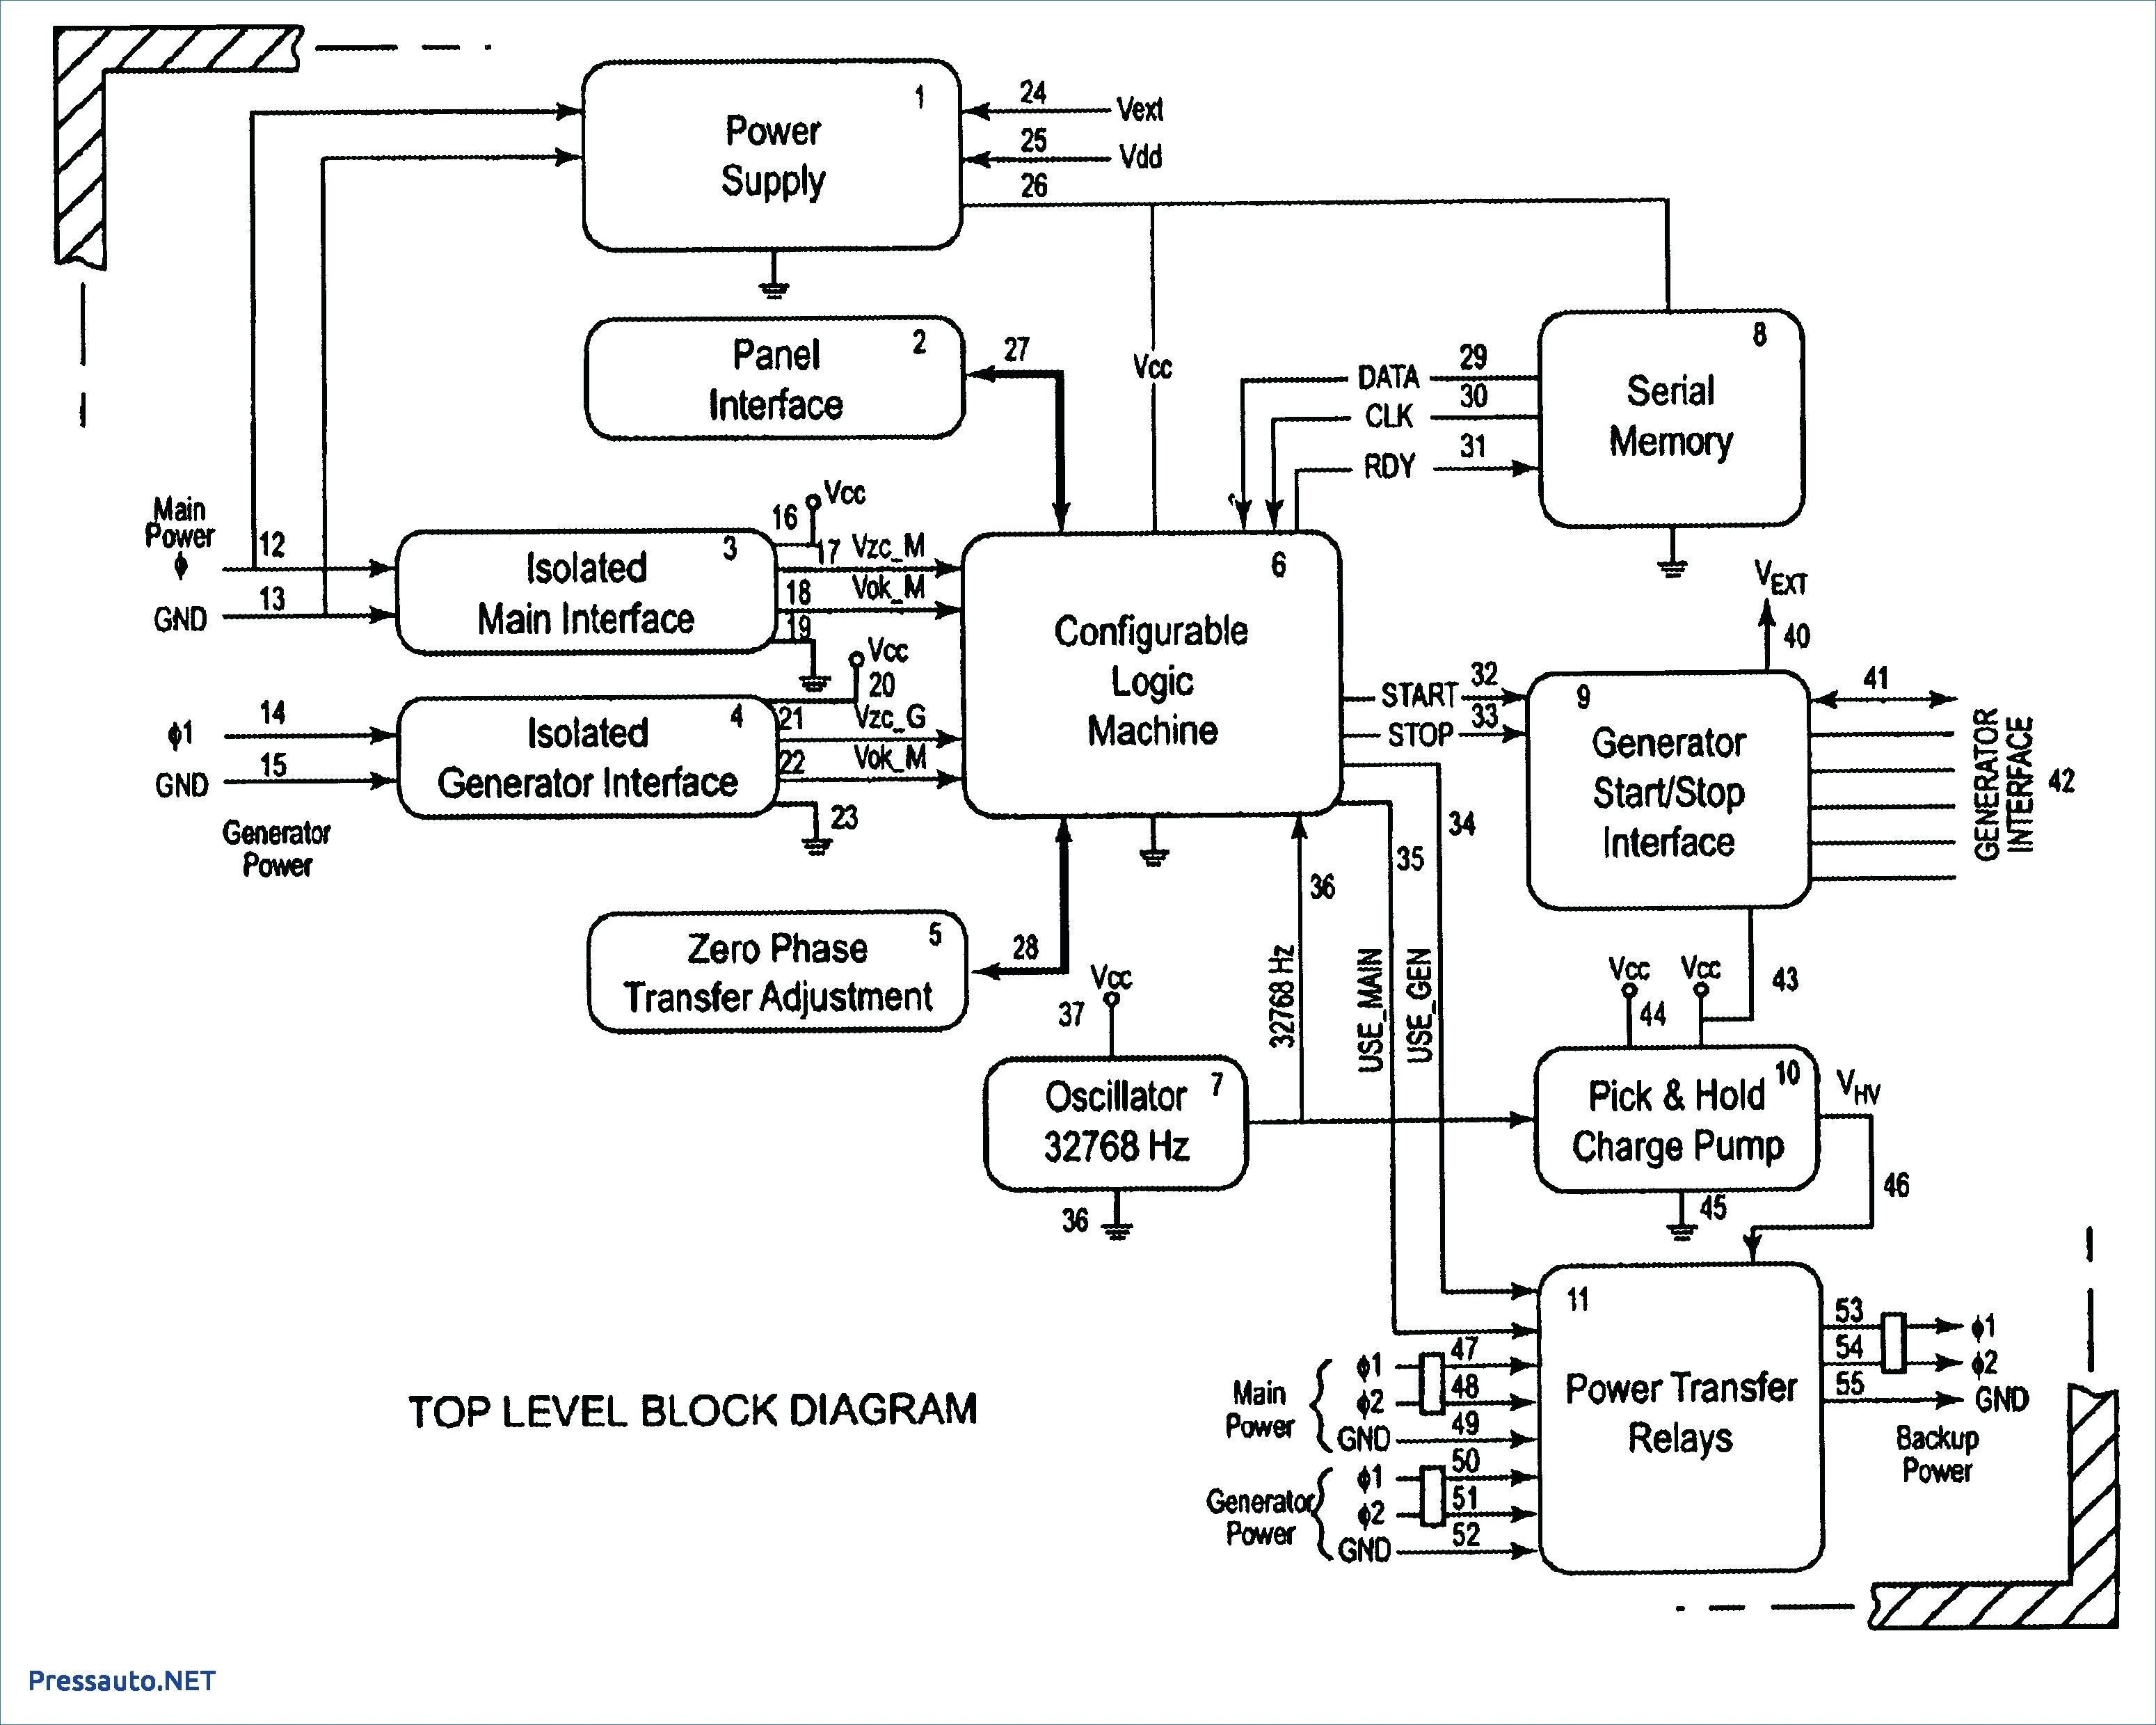 Kohler Transfer Switch Wiring Diagram - Wiring Diagram Kohler Generator Save Kohler 7000 Generator Wiring Rh Noodesign Net Kohler Small Engine Wiring 7p